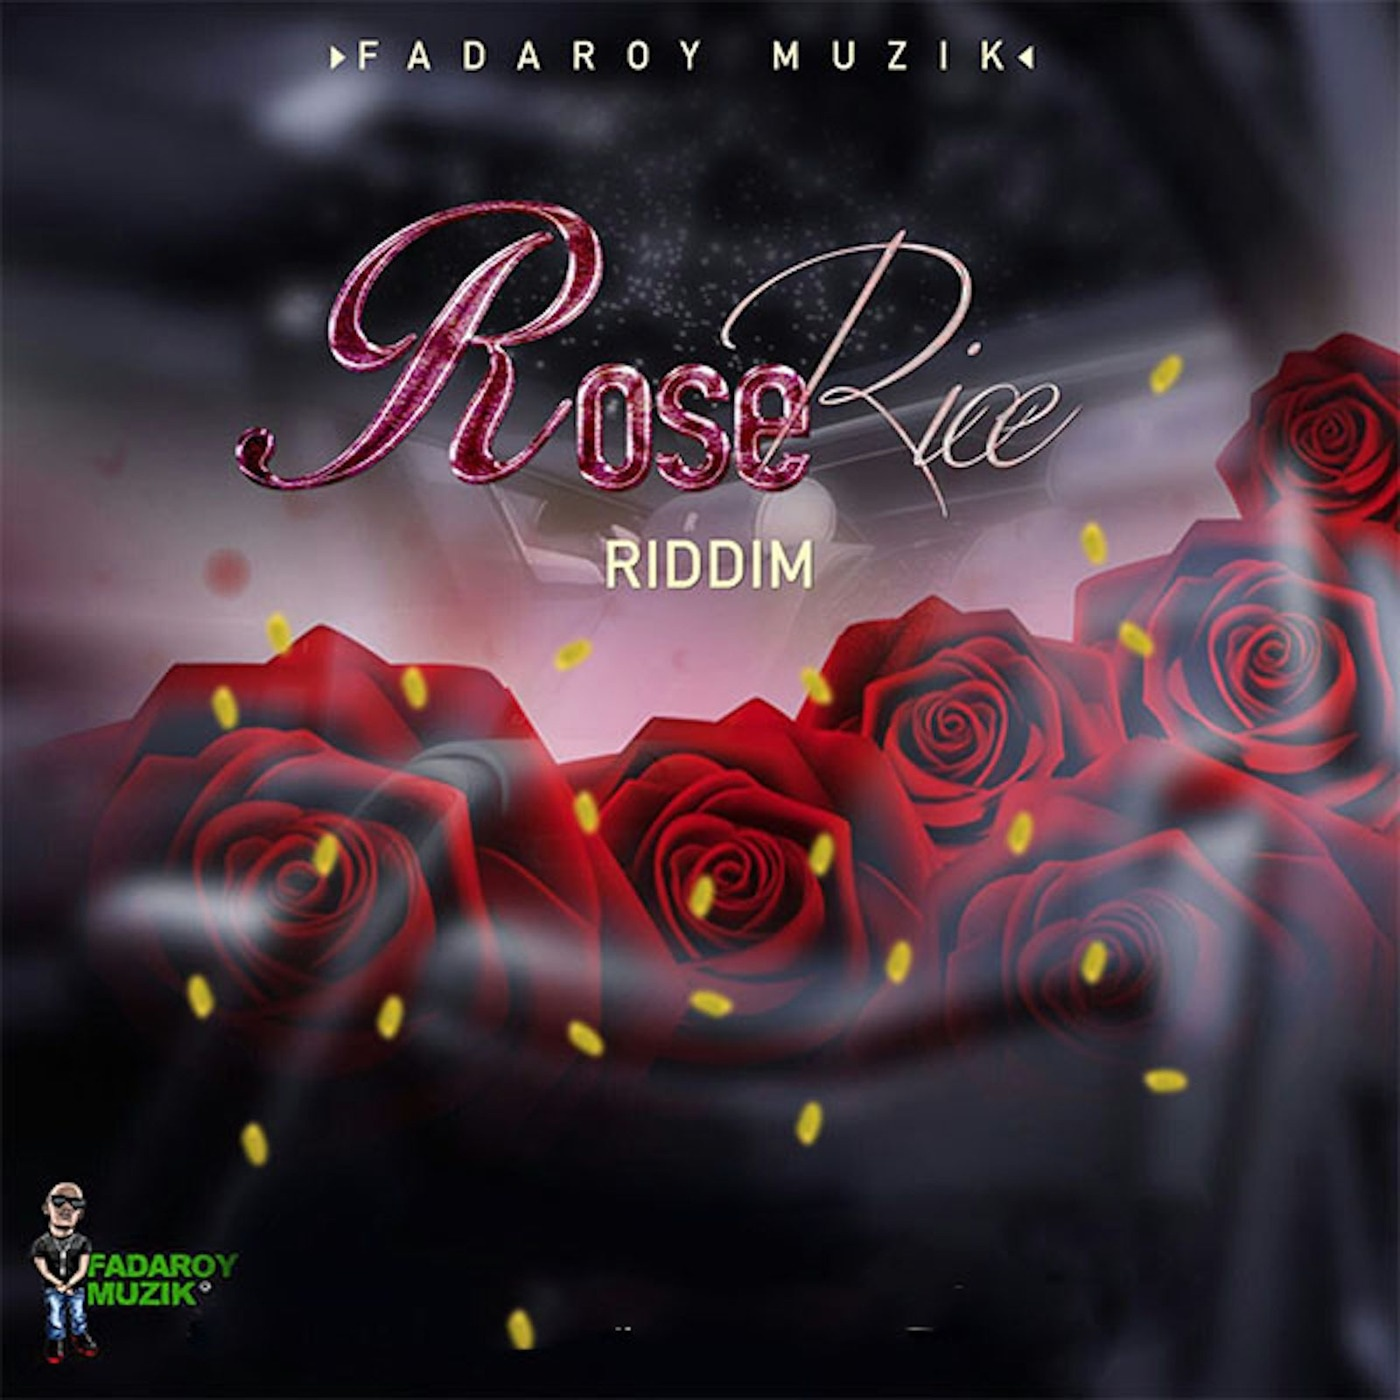 /myT03f00T3891/0-MUSIC/2018/03_MARCH/19/Riddims/Rose_Rice_Riddim_Promo_2018/Rose_Rice_Riddim_Promo_2018.jpg